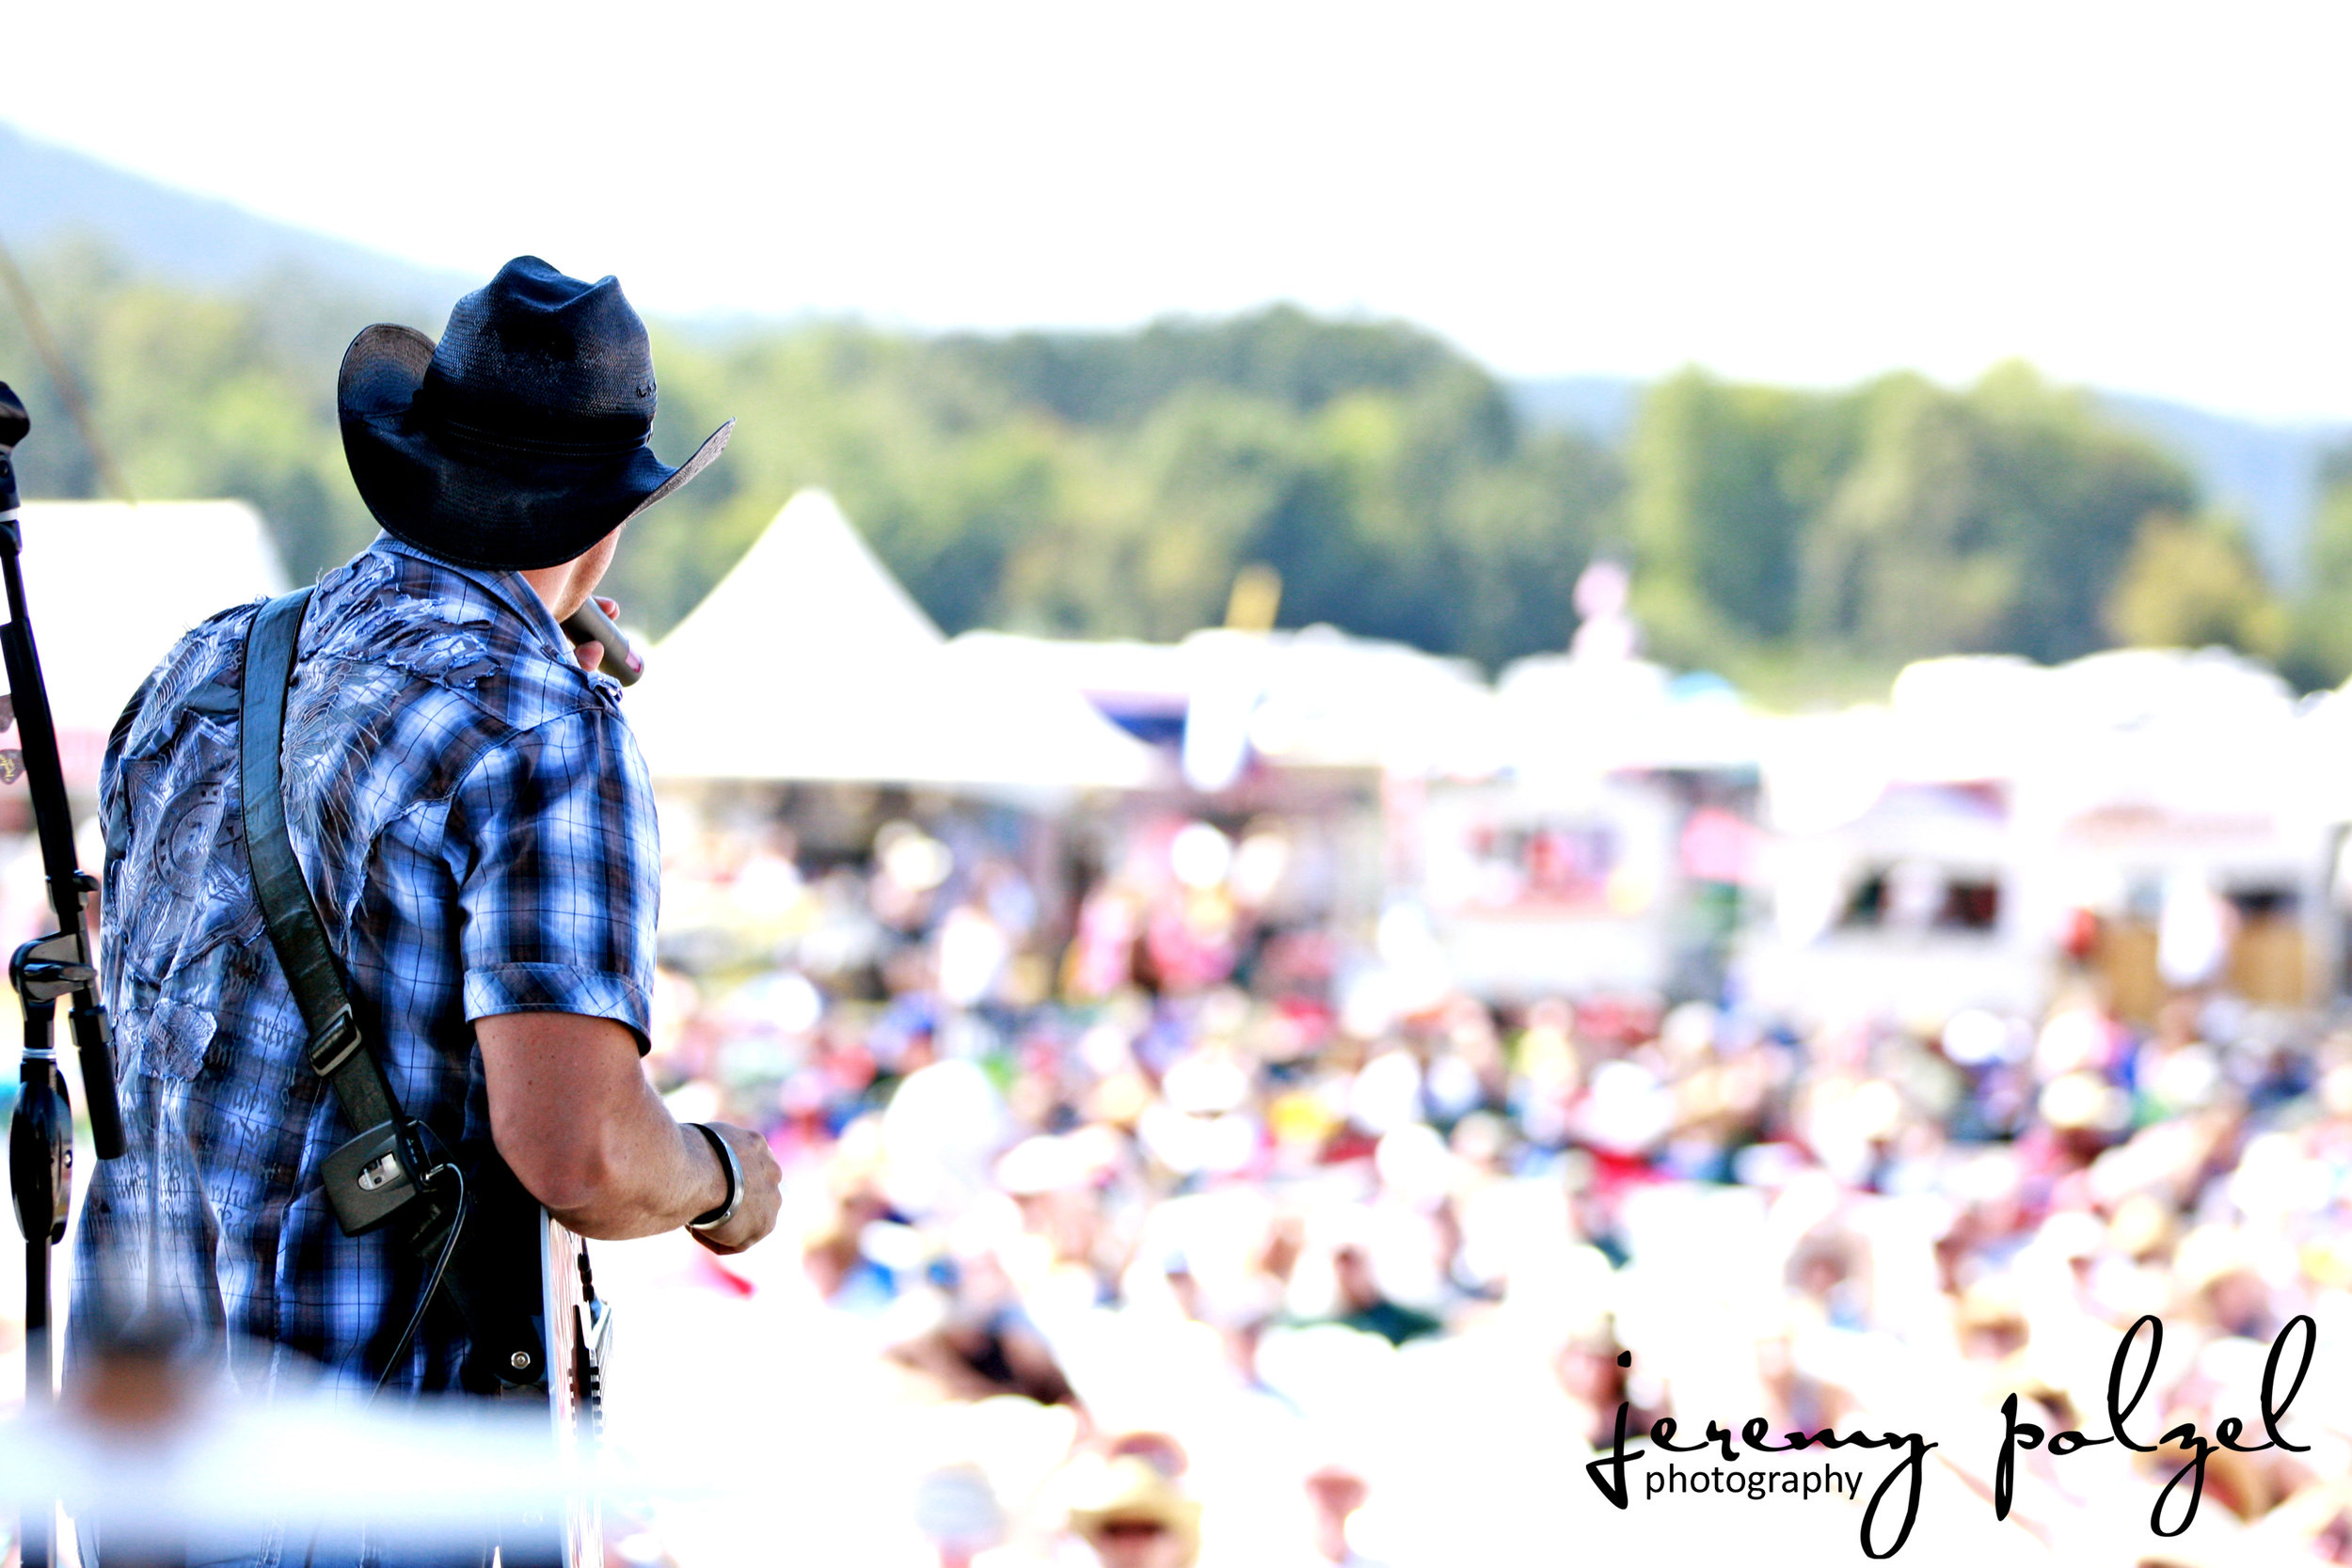 Chance McKinney at The Willamette Country Music Festival